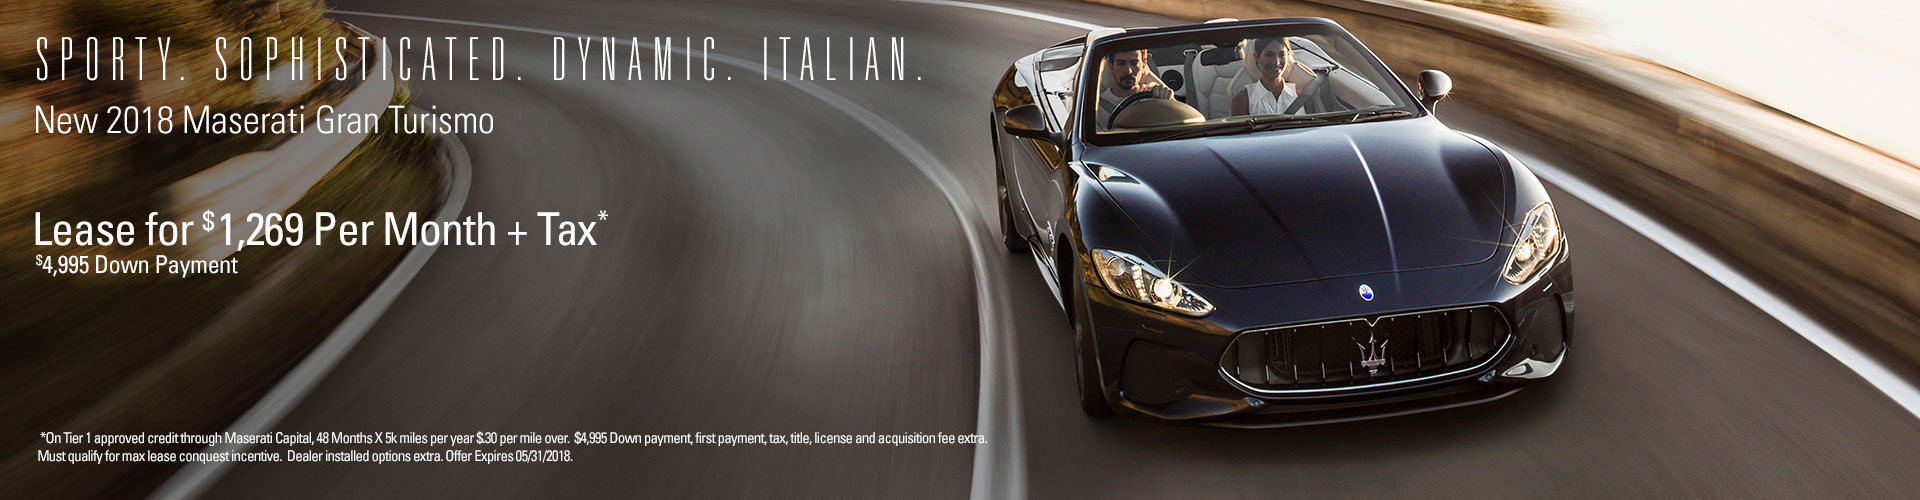 http://www.maseratibeverlyhills.com/vehicles/new/?srp_category=new&sort_by=price_desc&pg=0&token=bd84f0439222c3500b938bb318035c31&search_inv_terms=&price_min=64988&price_max=175770&year_min=2018&year_max=2018&mileage_min=3&mileage_max=2700&model%5B%5D=GranTurismo